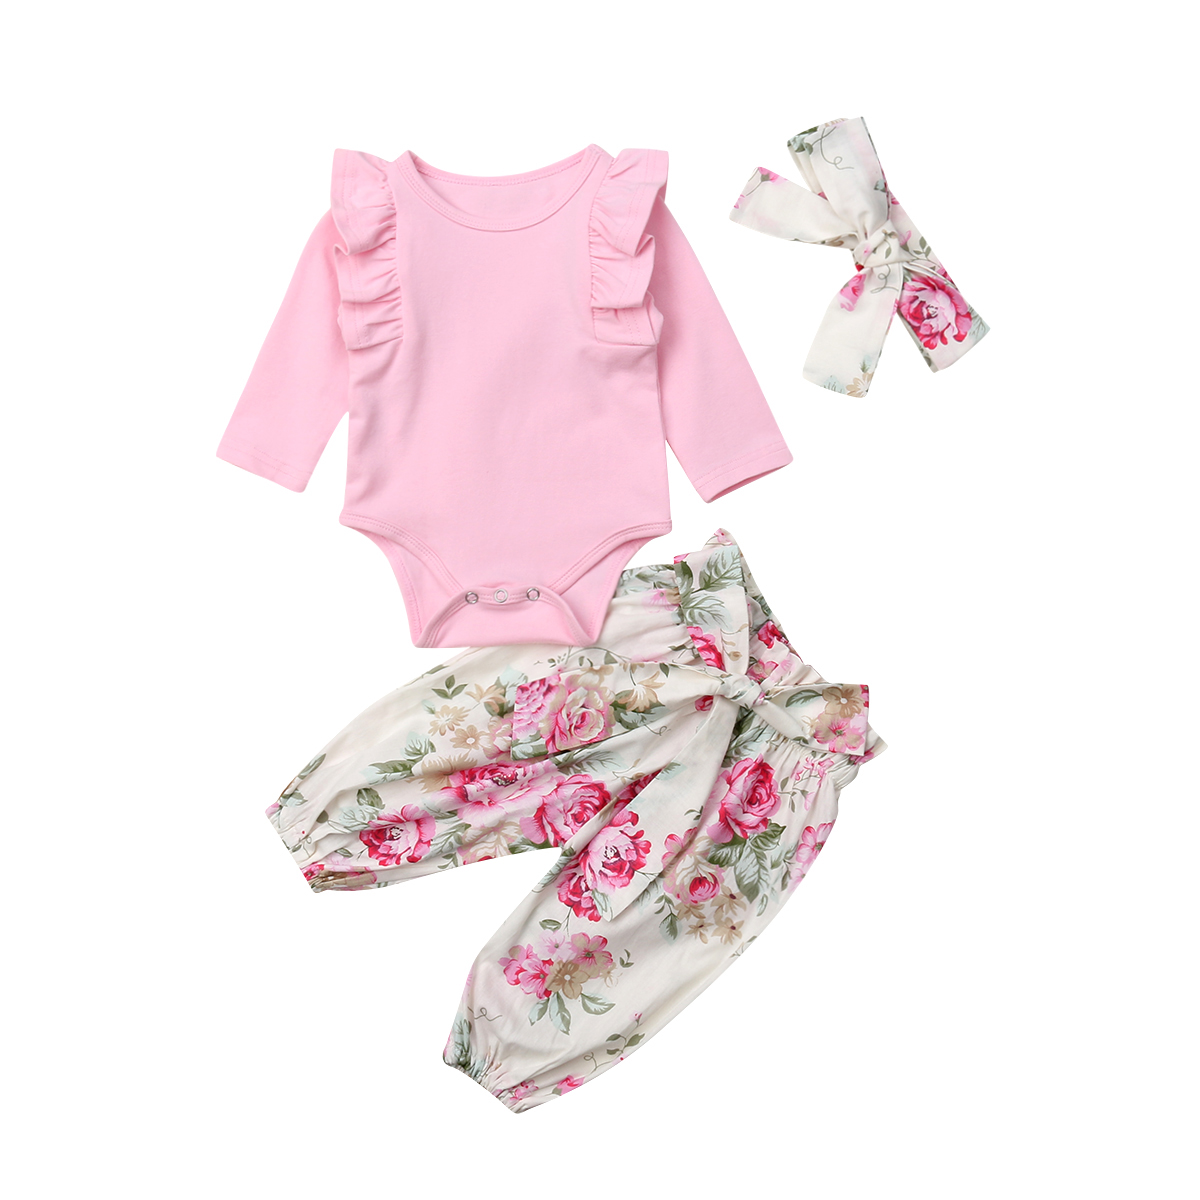 98bd1e2a78 Detail Feedback Questions about Newborn Baby Girl Autumn And Winter Long  Sleeve Cotton Clothes Set Pink Romper Tops + Flower Pants + Headband 3pcs  Outfits ...